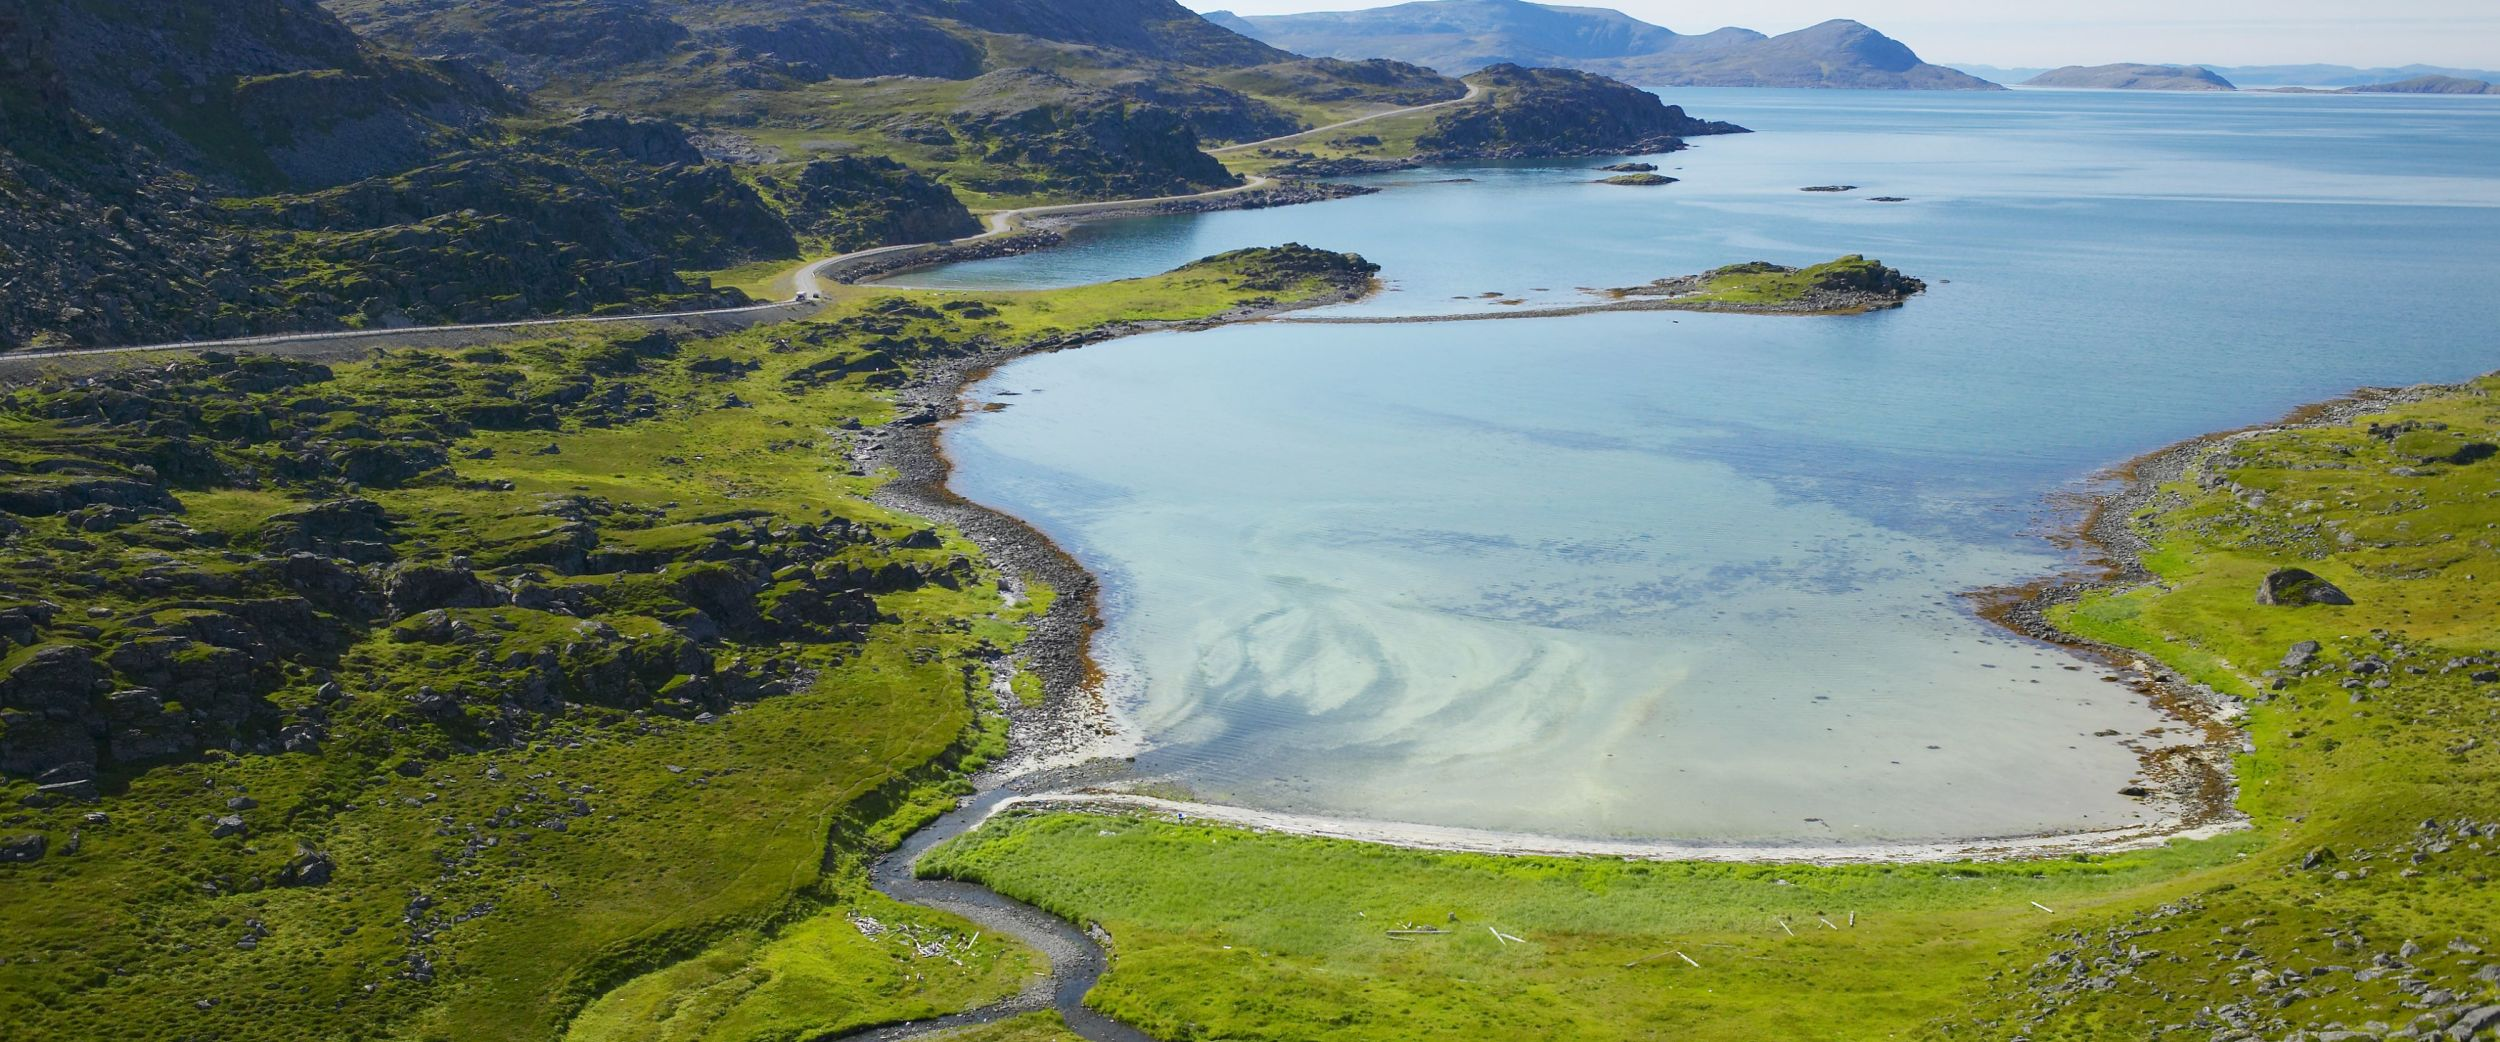 Beach in Havøysund, photo: Bård Løken, nordnorge.com